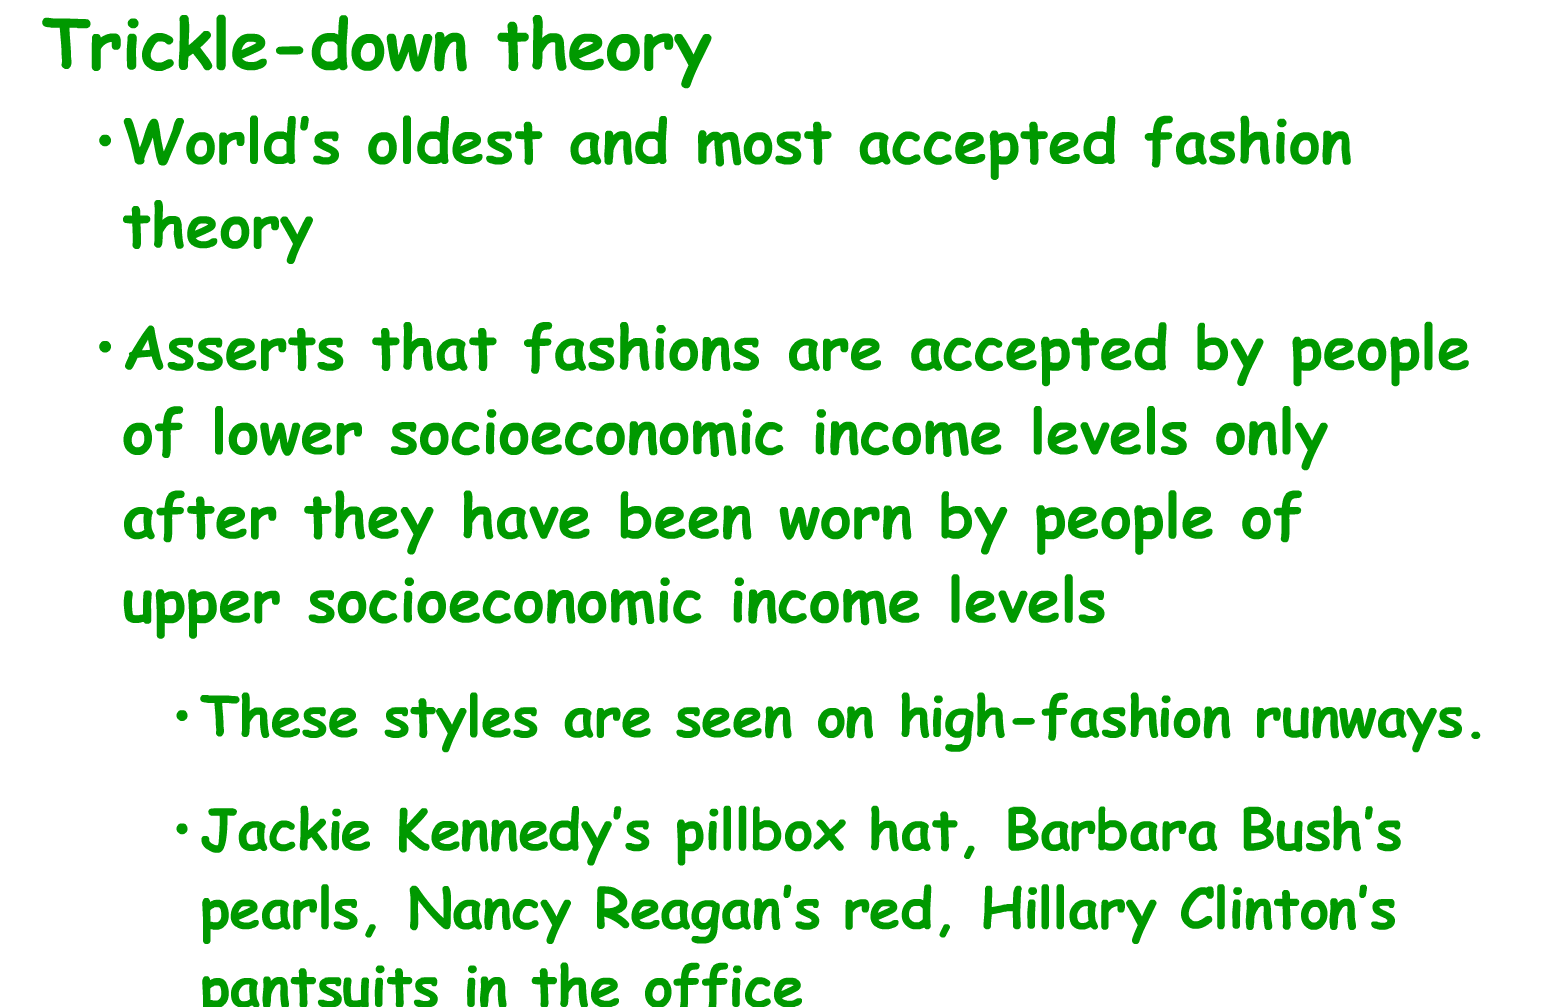 Fashion Culture, social control and social change. - Sociology Trickle down theory fashion simmel